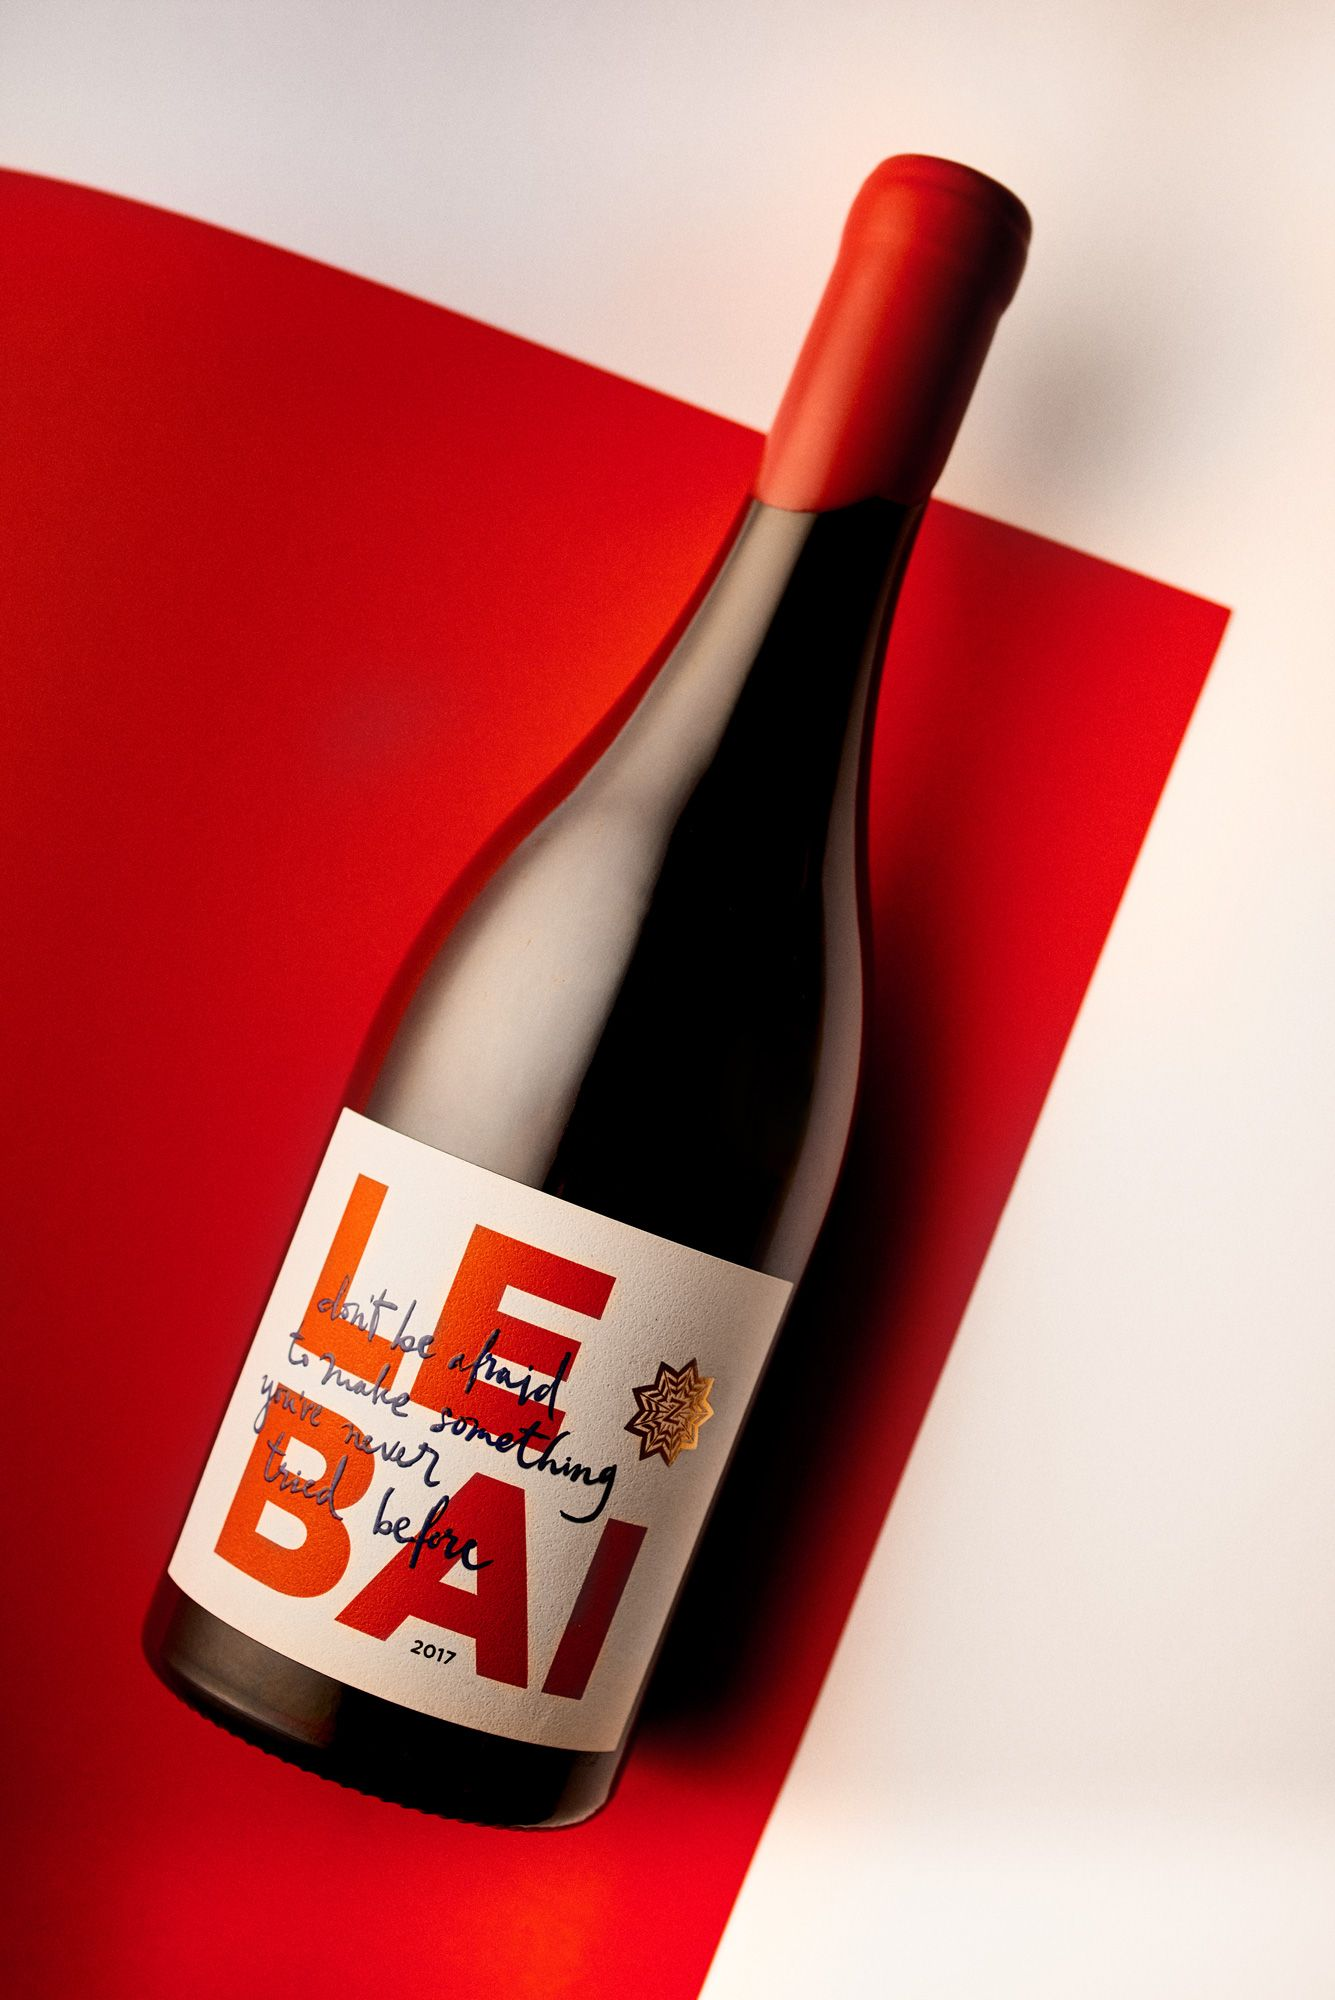 Le Bai Red Wine Invites You To Be Adventurous In 2020 Wine Invitations Red Wine Labels Wine Label Design